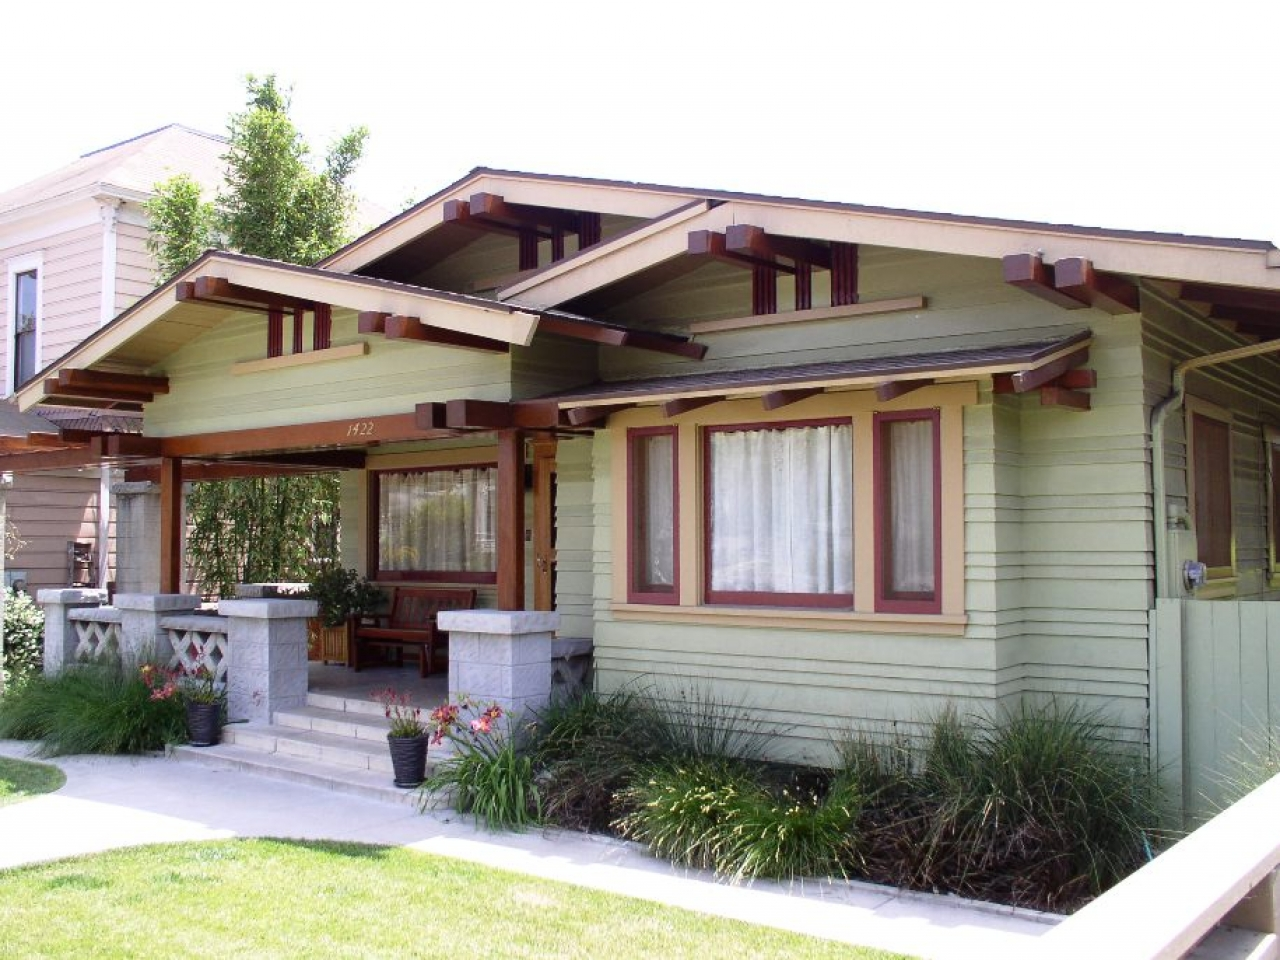 Craftsman bungalow roof styles 1920 craftsman bungalow for Craftsman roofing